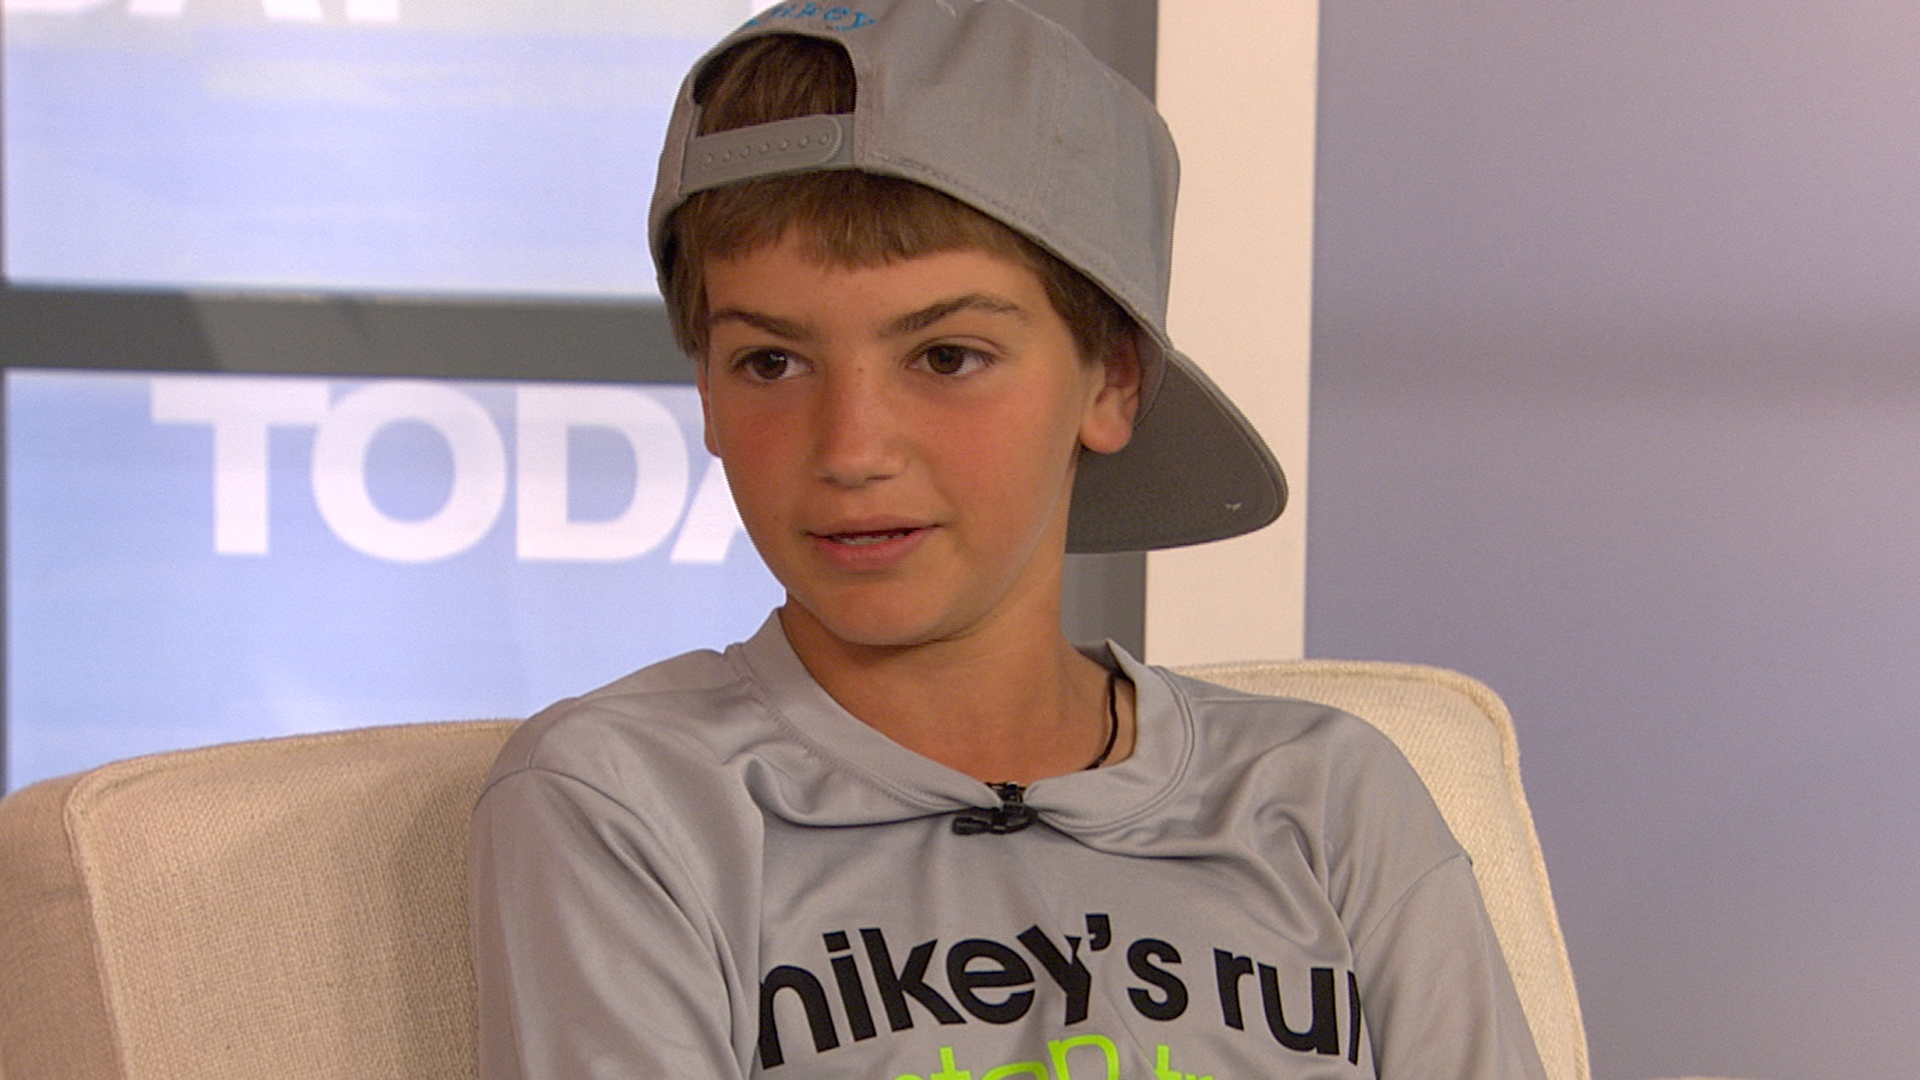 Teen quadruple amputee: 'It only takes one person to make a